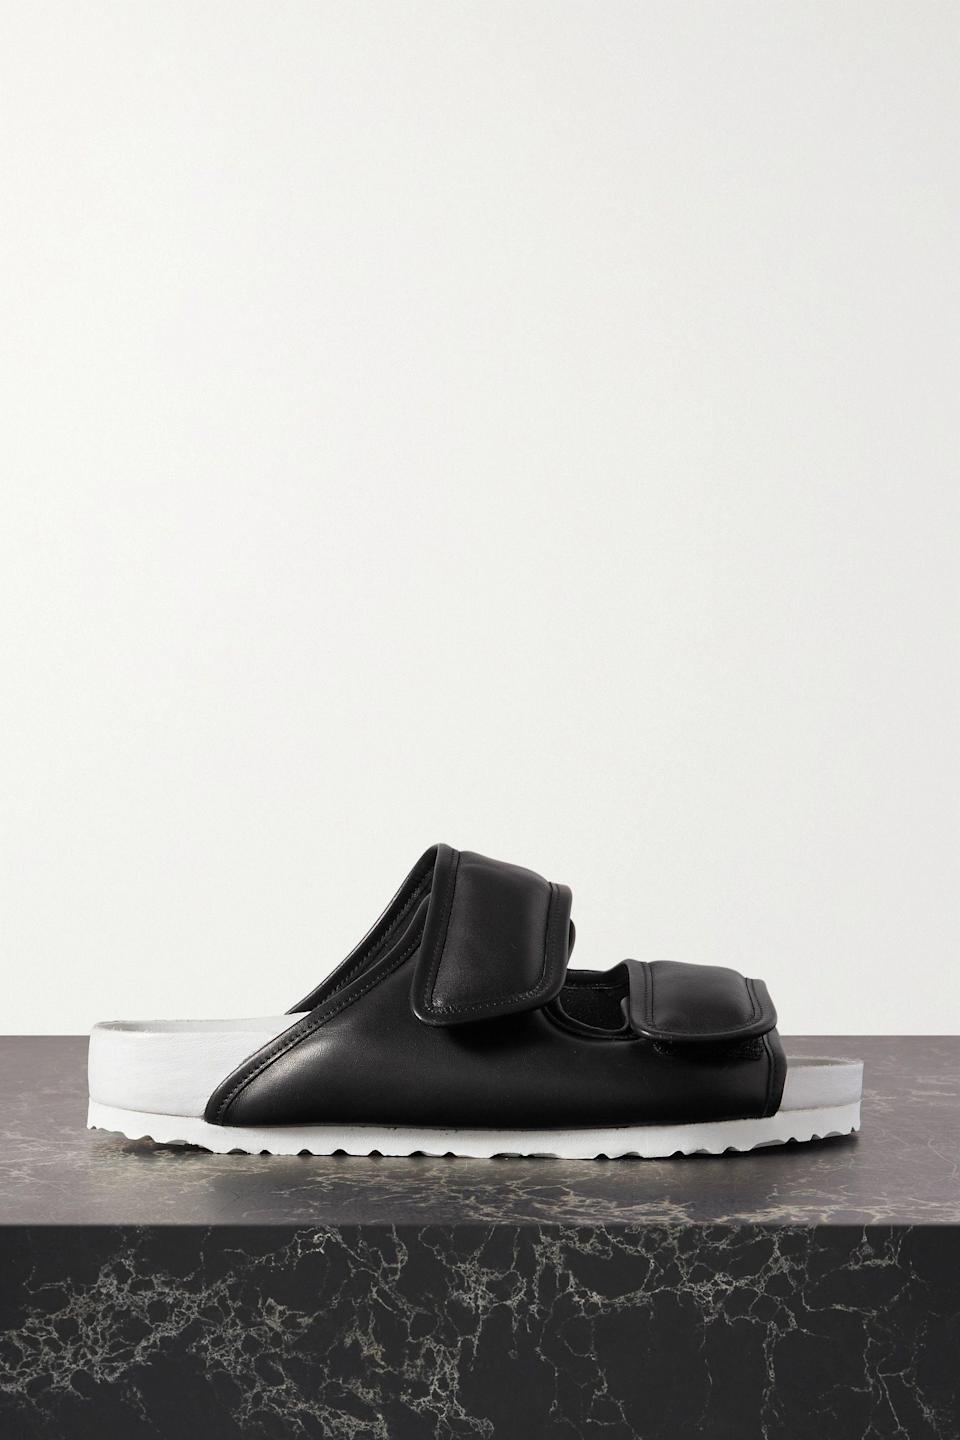 """<p><strong>Birkenstock 1774</strong></p><p>net-a-porter.com</p><p><strong>$470.00</strong></p><p><a href=""""https://go.redirectingat.com?id=74968X1596630&url=https%3A%2F%2Fwww.net-a-porter.com%2Fen-us%2Fshop%2Fproduct%2Fbirkenstock-1774%2Fshoes%2Fflat%2Fplus-ding-yun-zhang-two-tone-padded-leather-sandals%2F2009602587198&sref=https%3A%2F%2Fwww.harpersbazaar.com%2Ffashion%2Ftrends%2Fg37039475%2Fgifts-for-new-moms%2F"""" rel=""""nofollow noopener"""" target=""""_blank"""" data-ylk=""""slk:Shop Now"""" class=""""link rapid-noclick-resp"""">Shop Now</a></p><p>Get her some shoes that are cool, but feel like slippers, but are definitely not actually slippers.</p>"""